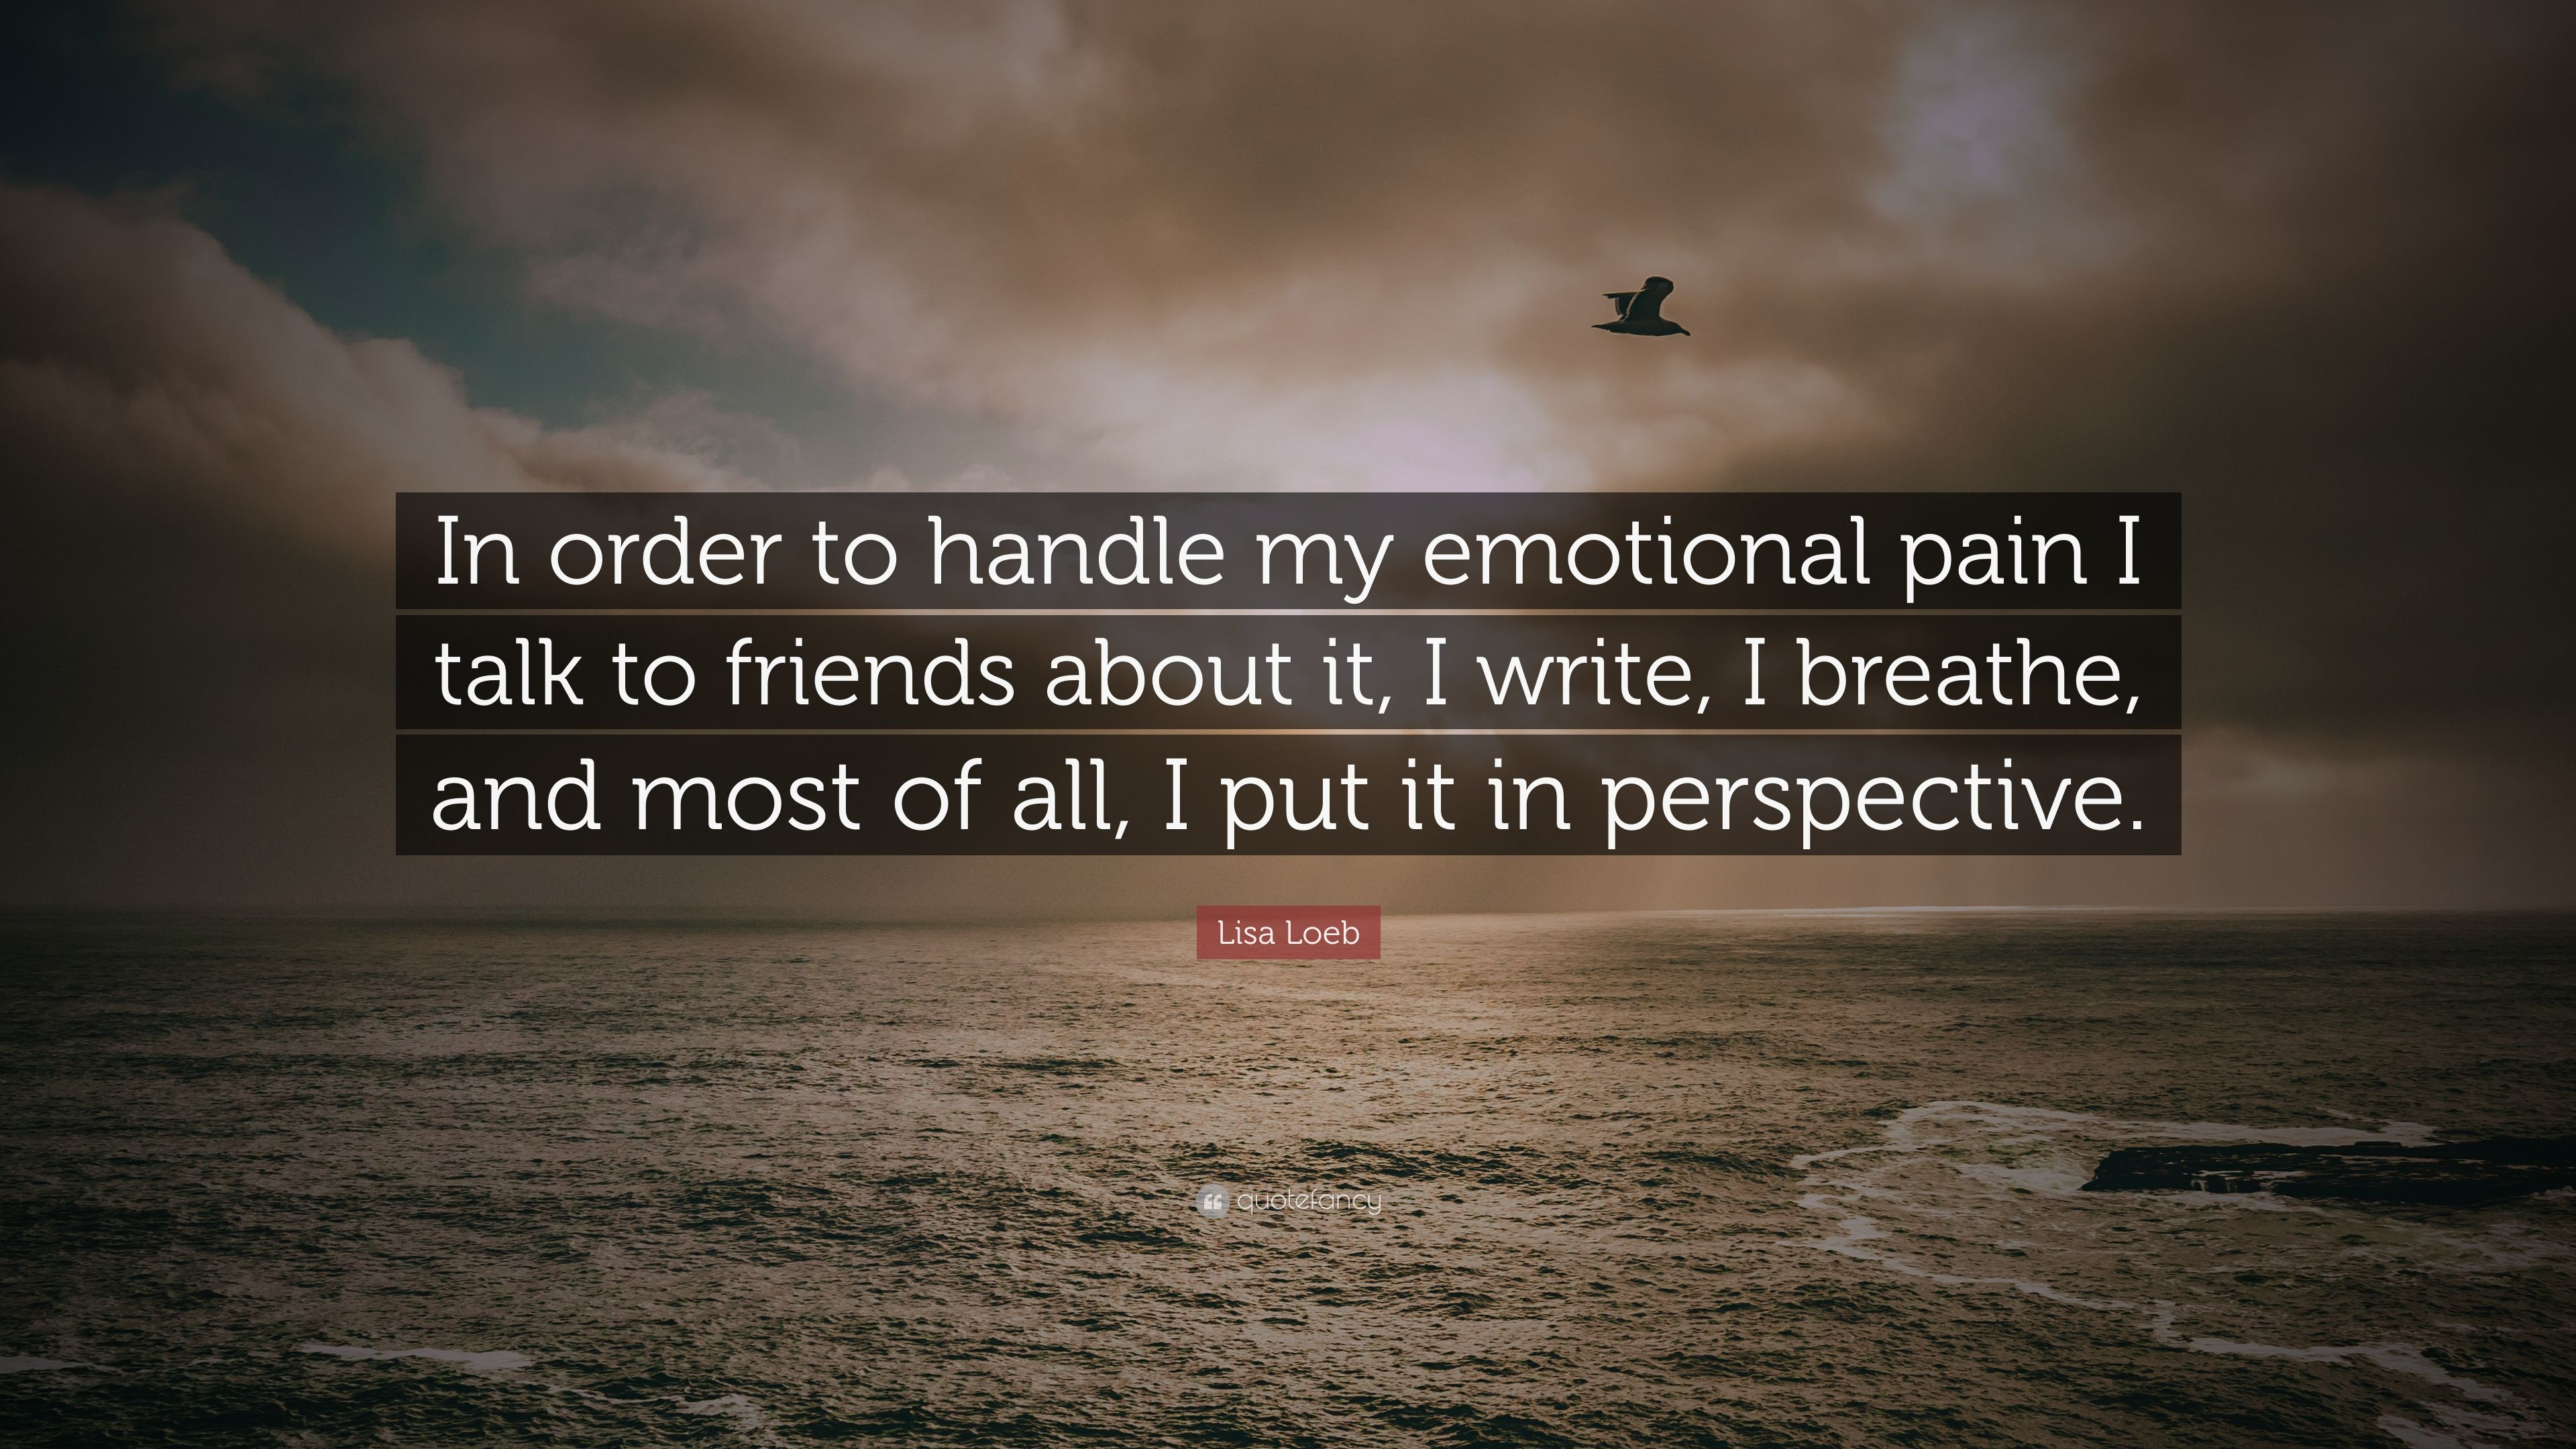 Image of: Emotional Typewriter Lisa Loeb Quote in Order To Handle My Emotional Pain Talk To Friends Friendship Never Ends Wordpresscom Lisa Loeb Quote in Order To Handle My Emotional Pain Talk To